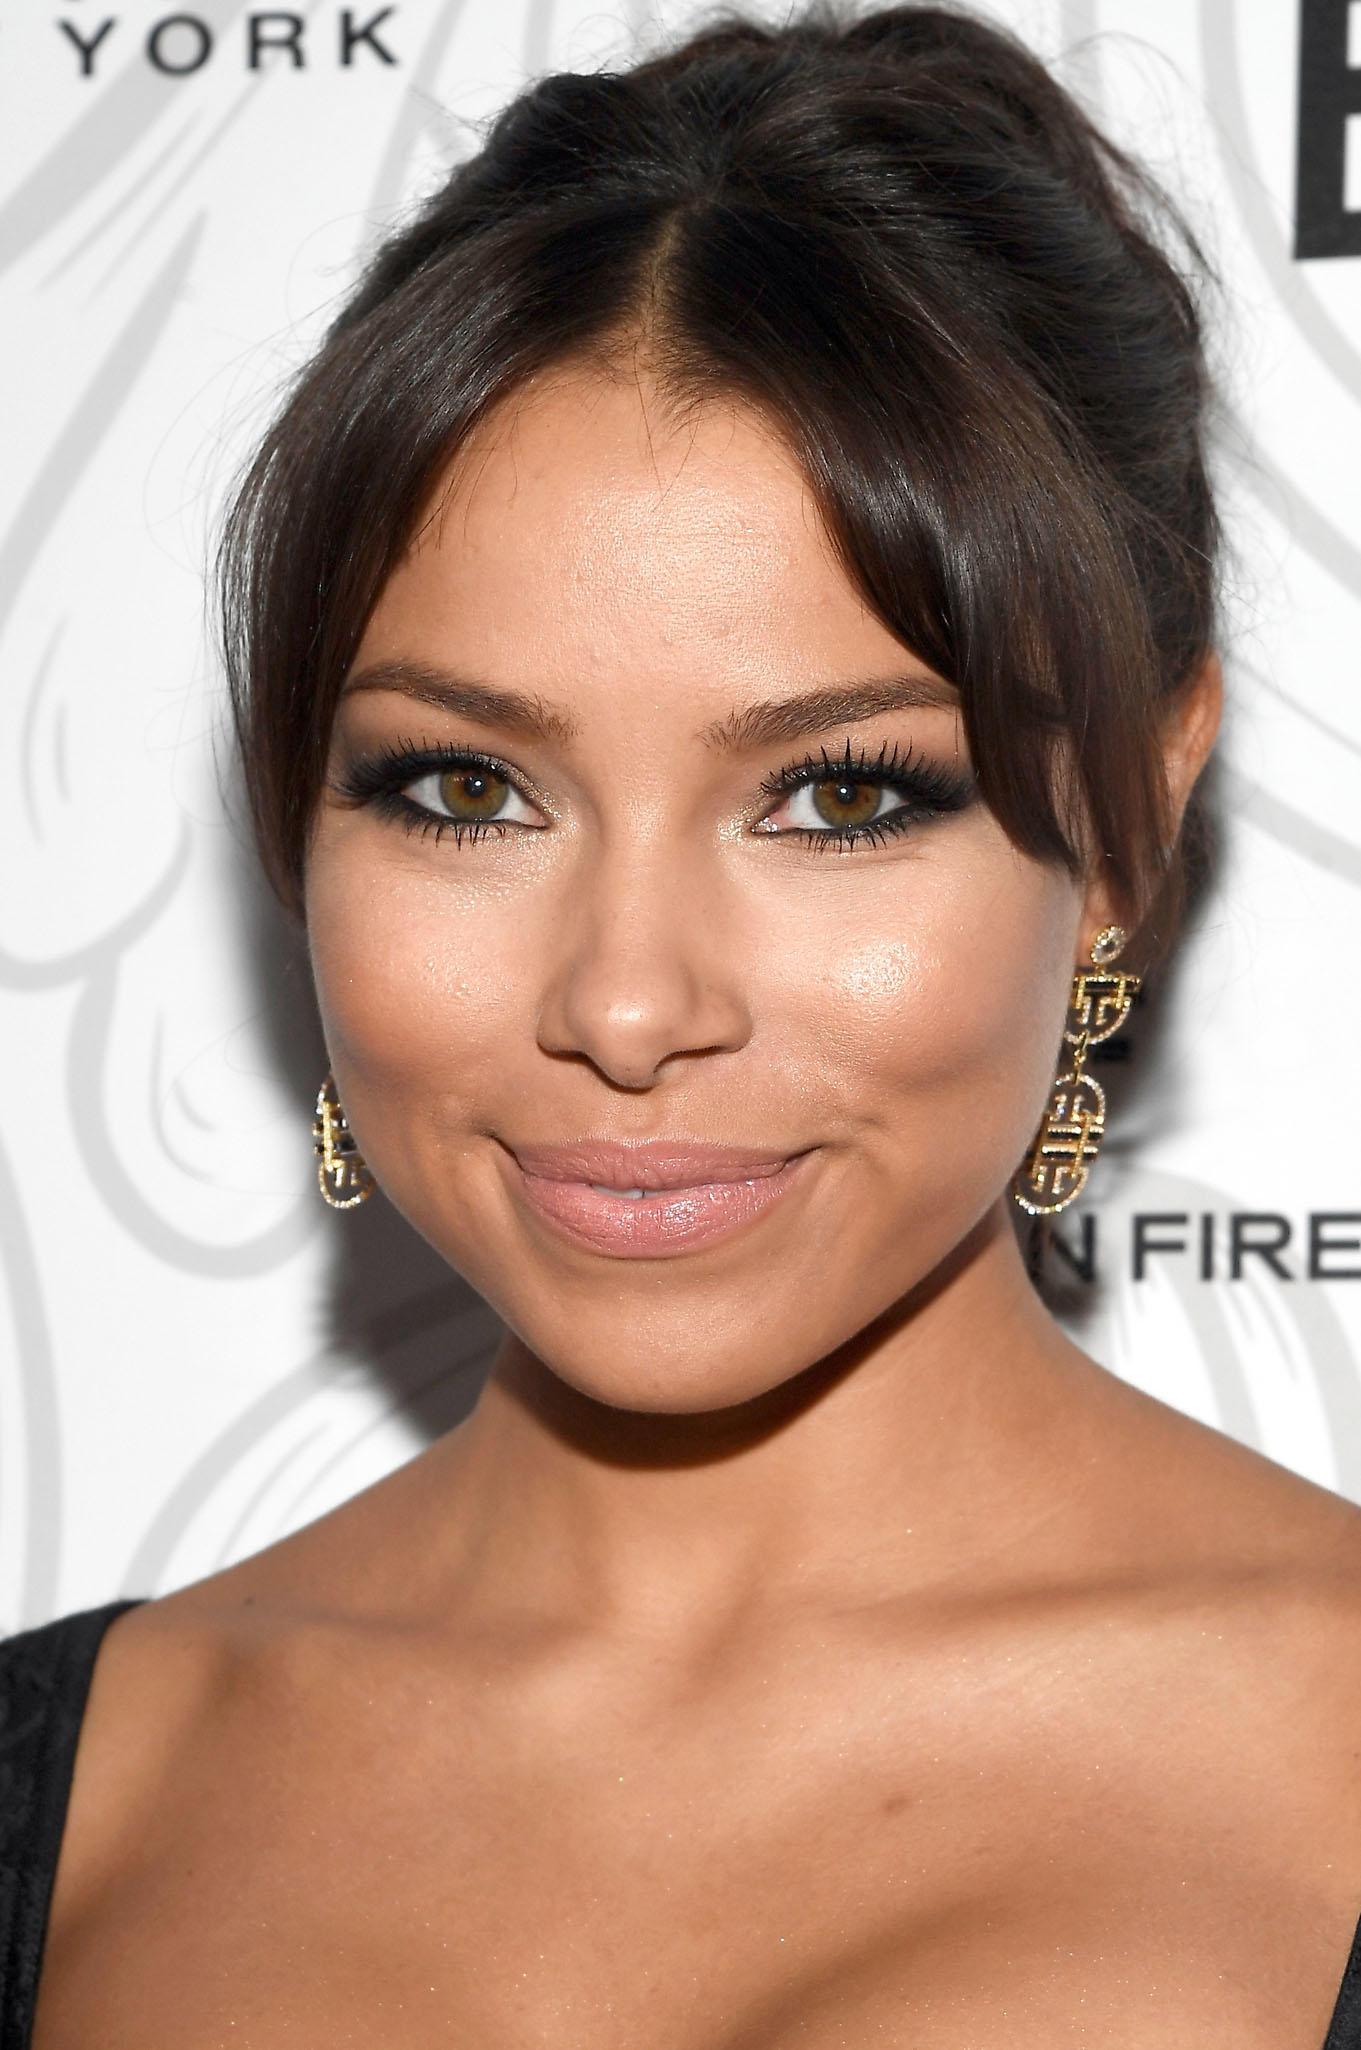 Video Jessica Parker Kennedy nude photos 2019